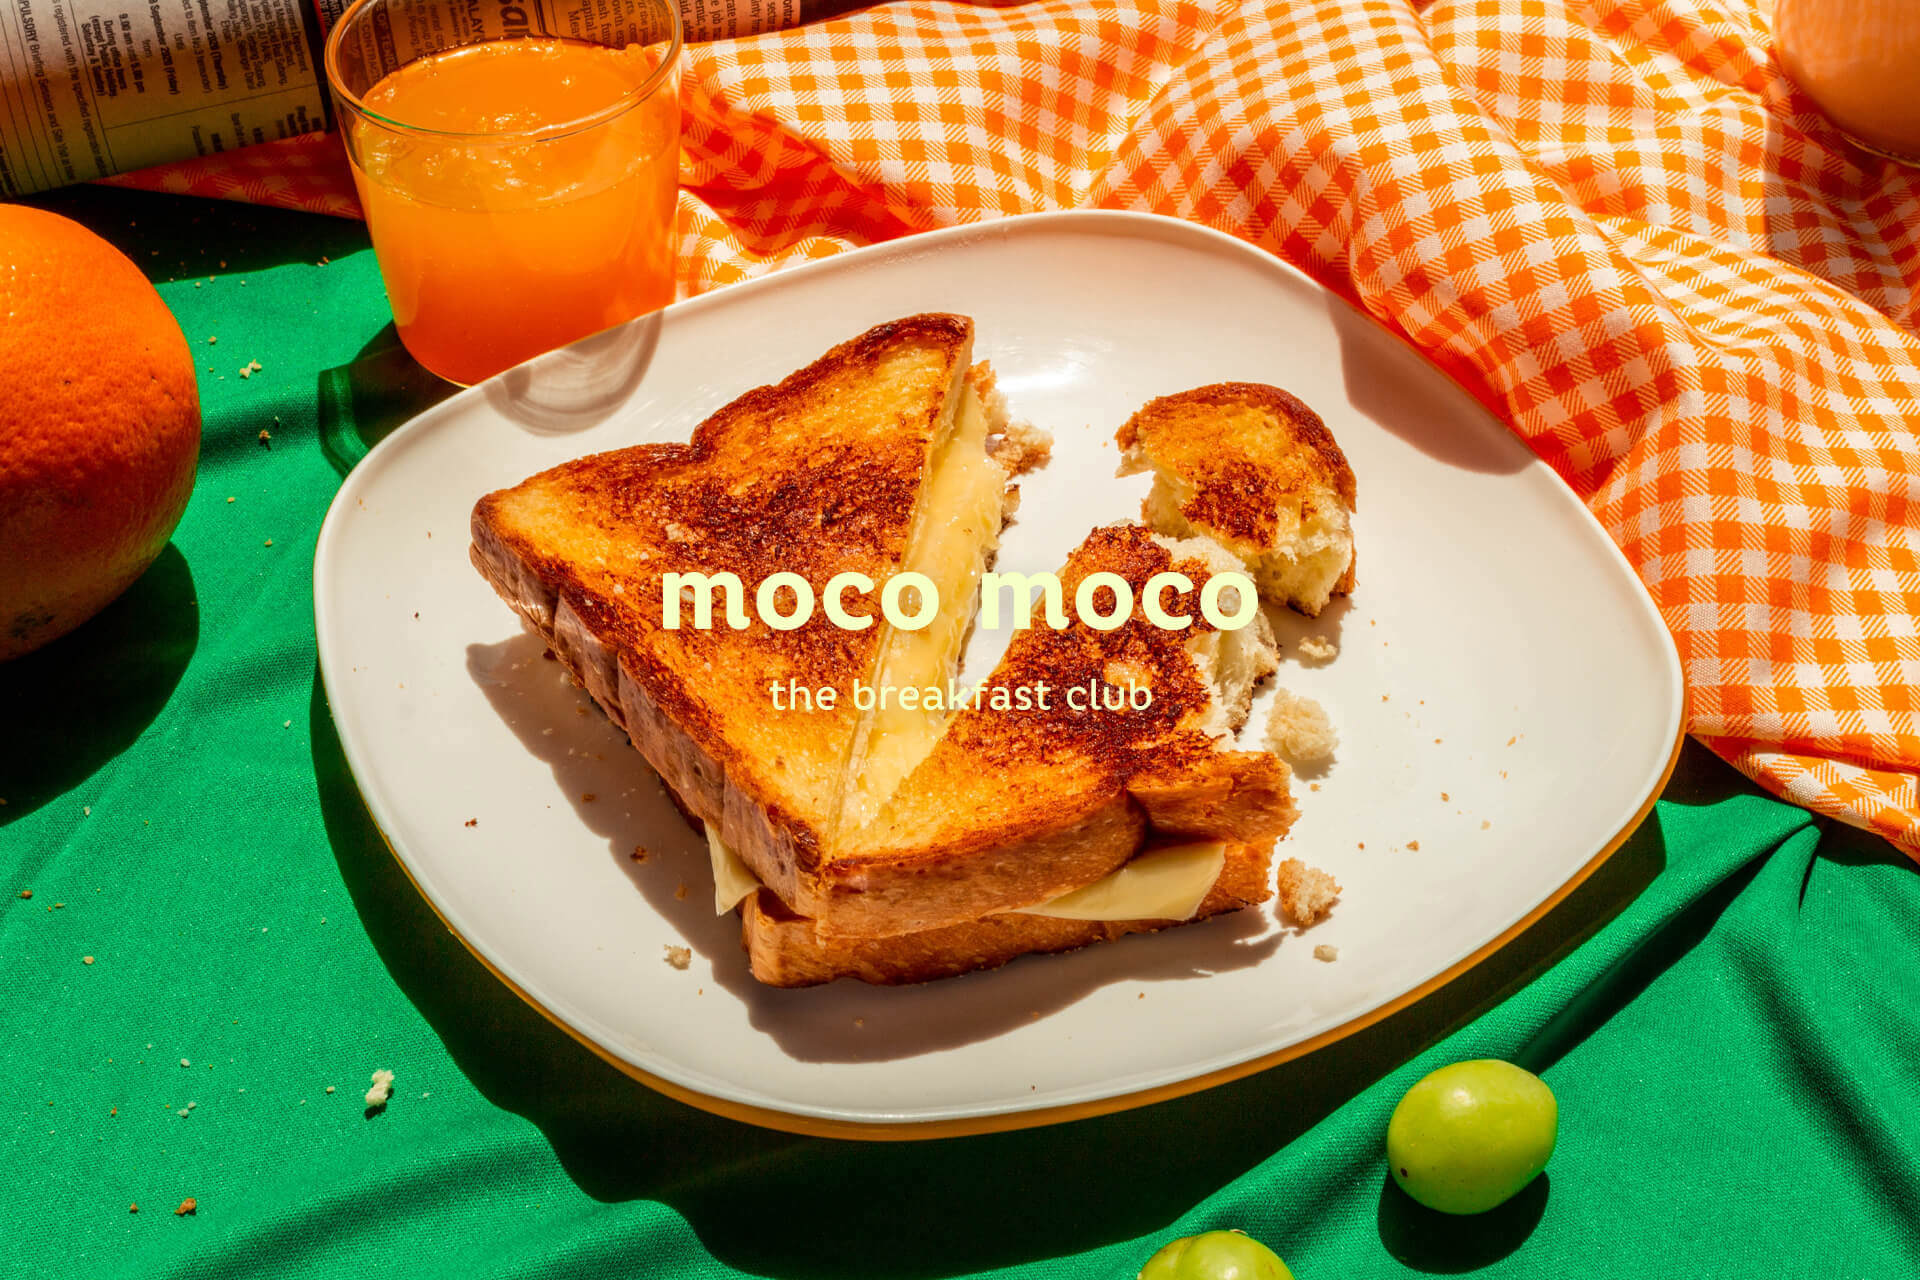 Moco Moco is a food photography passion project for a breakfast toast brand. We want to portray a busy, messy morning breakfast scenario. The art direction focus on bringing the early morning vibe with vibrant colours and a picnic mood.